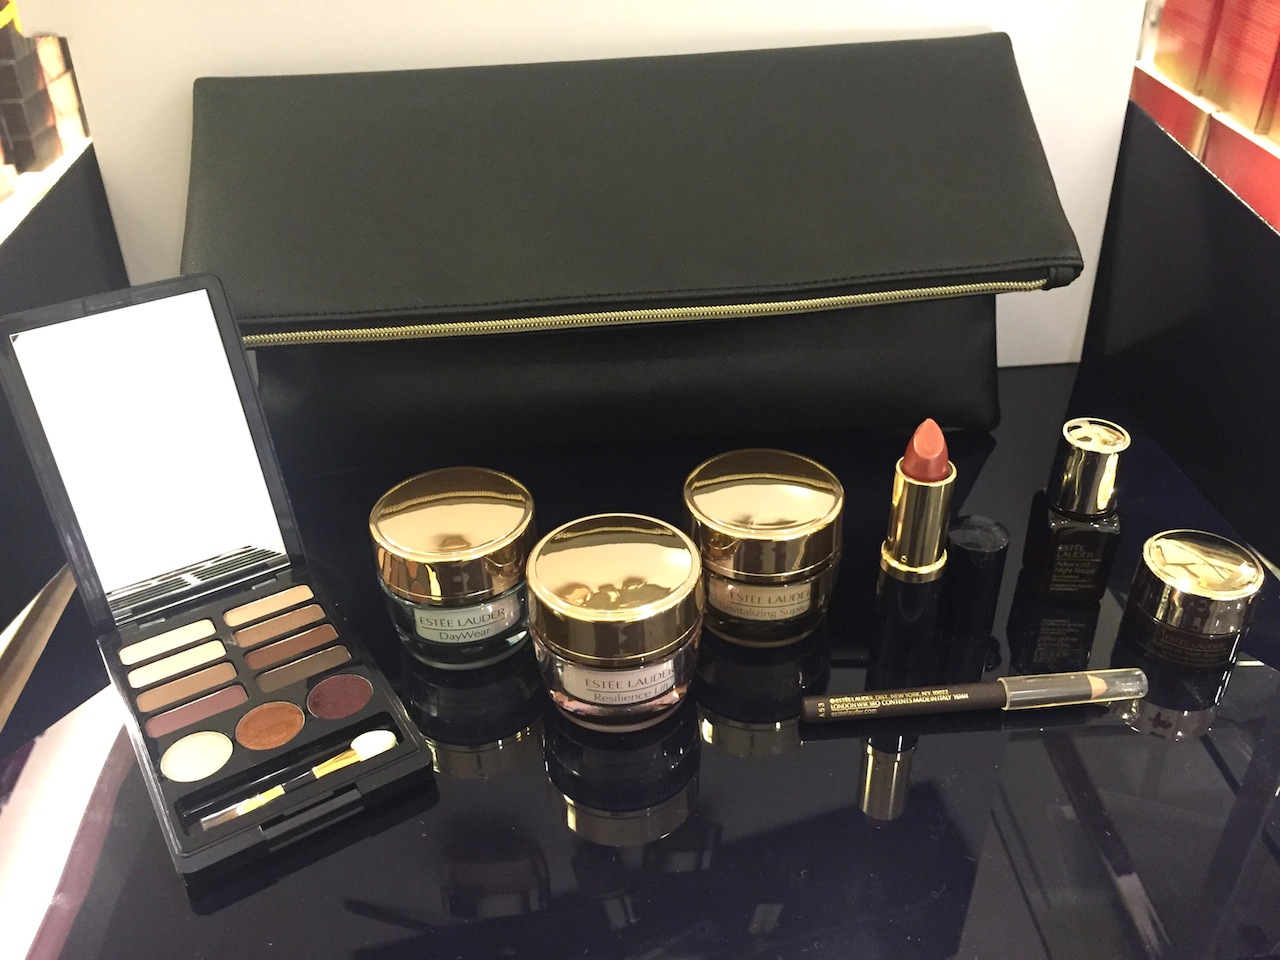 lola's secret beauty blog: Estee Lauder Gift with Purchase & an ...